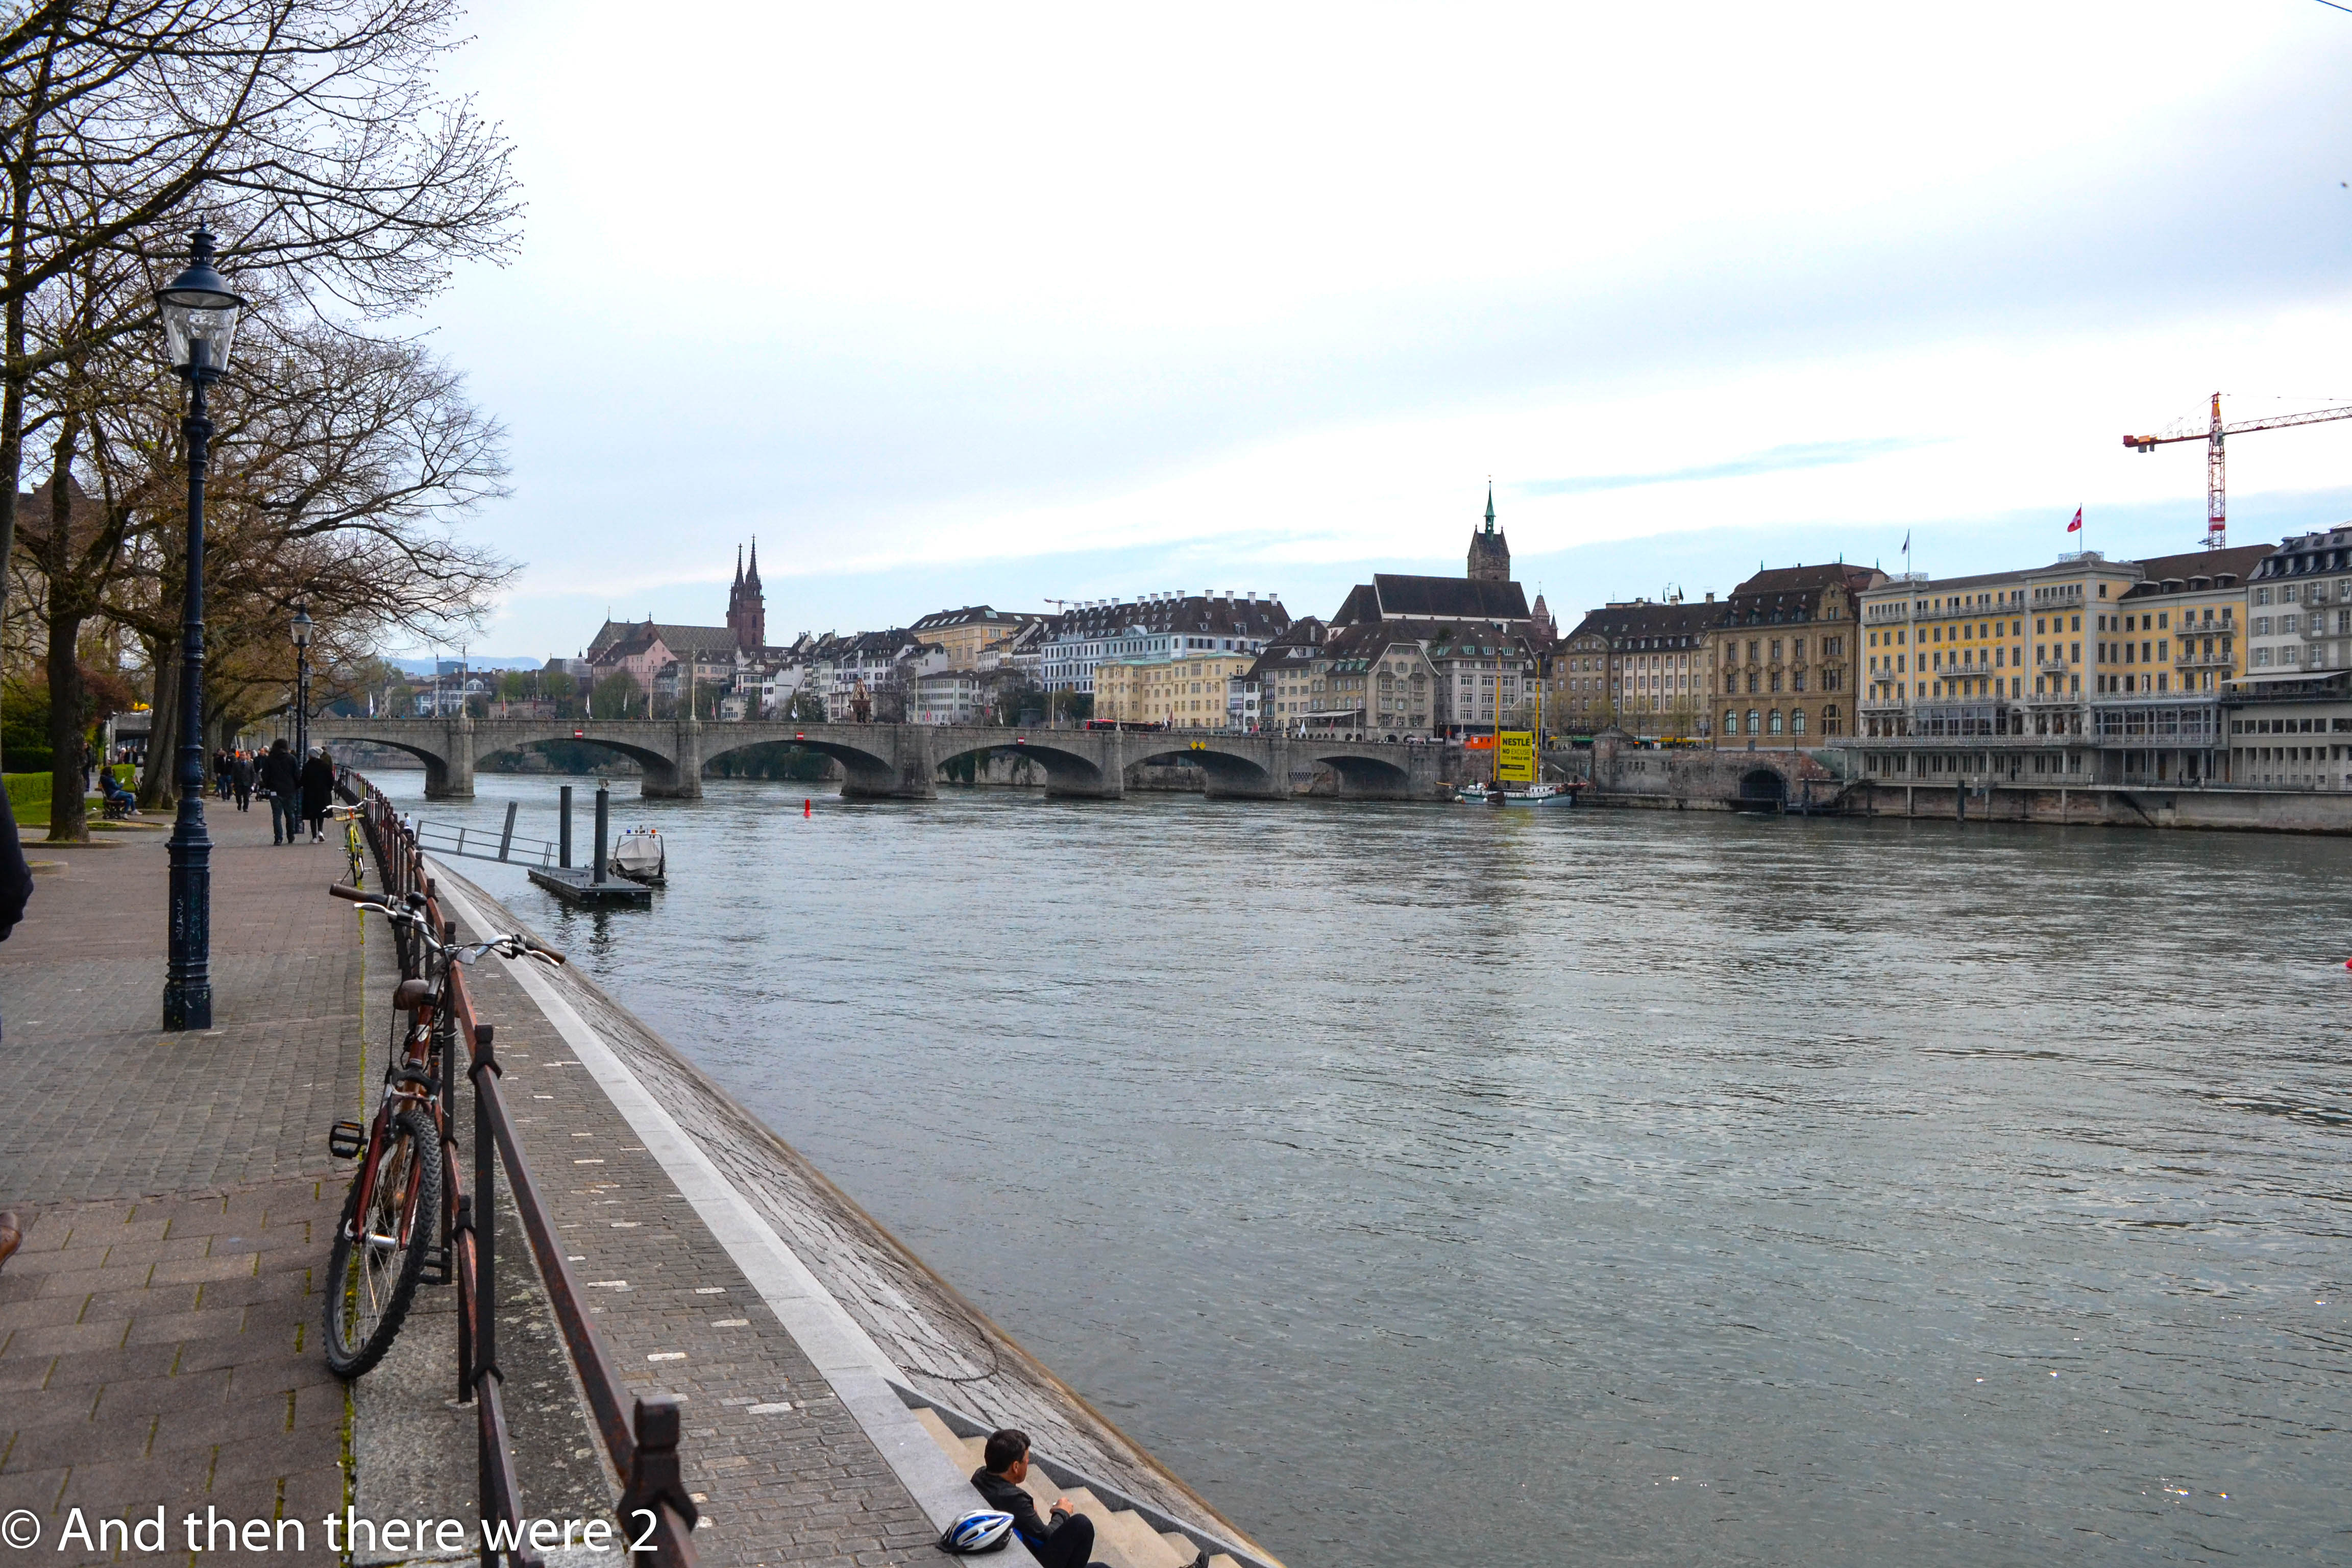 Basel on the banks of the Rhine river